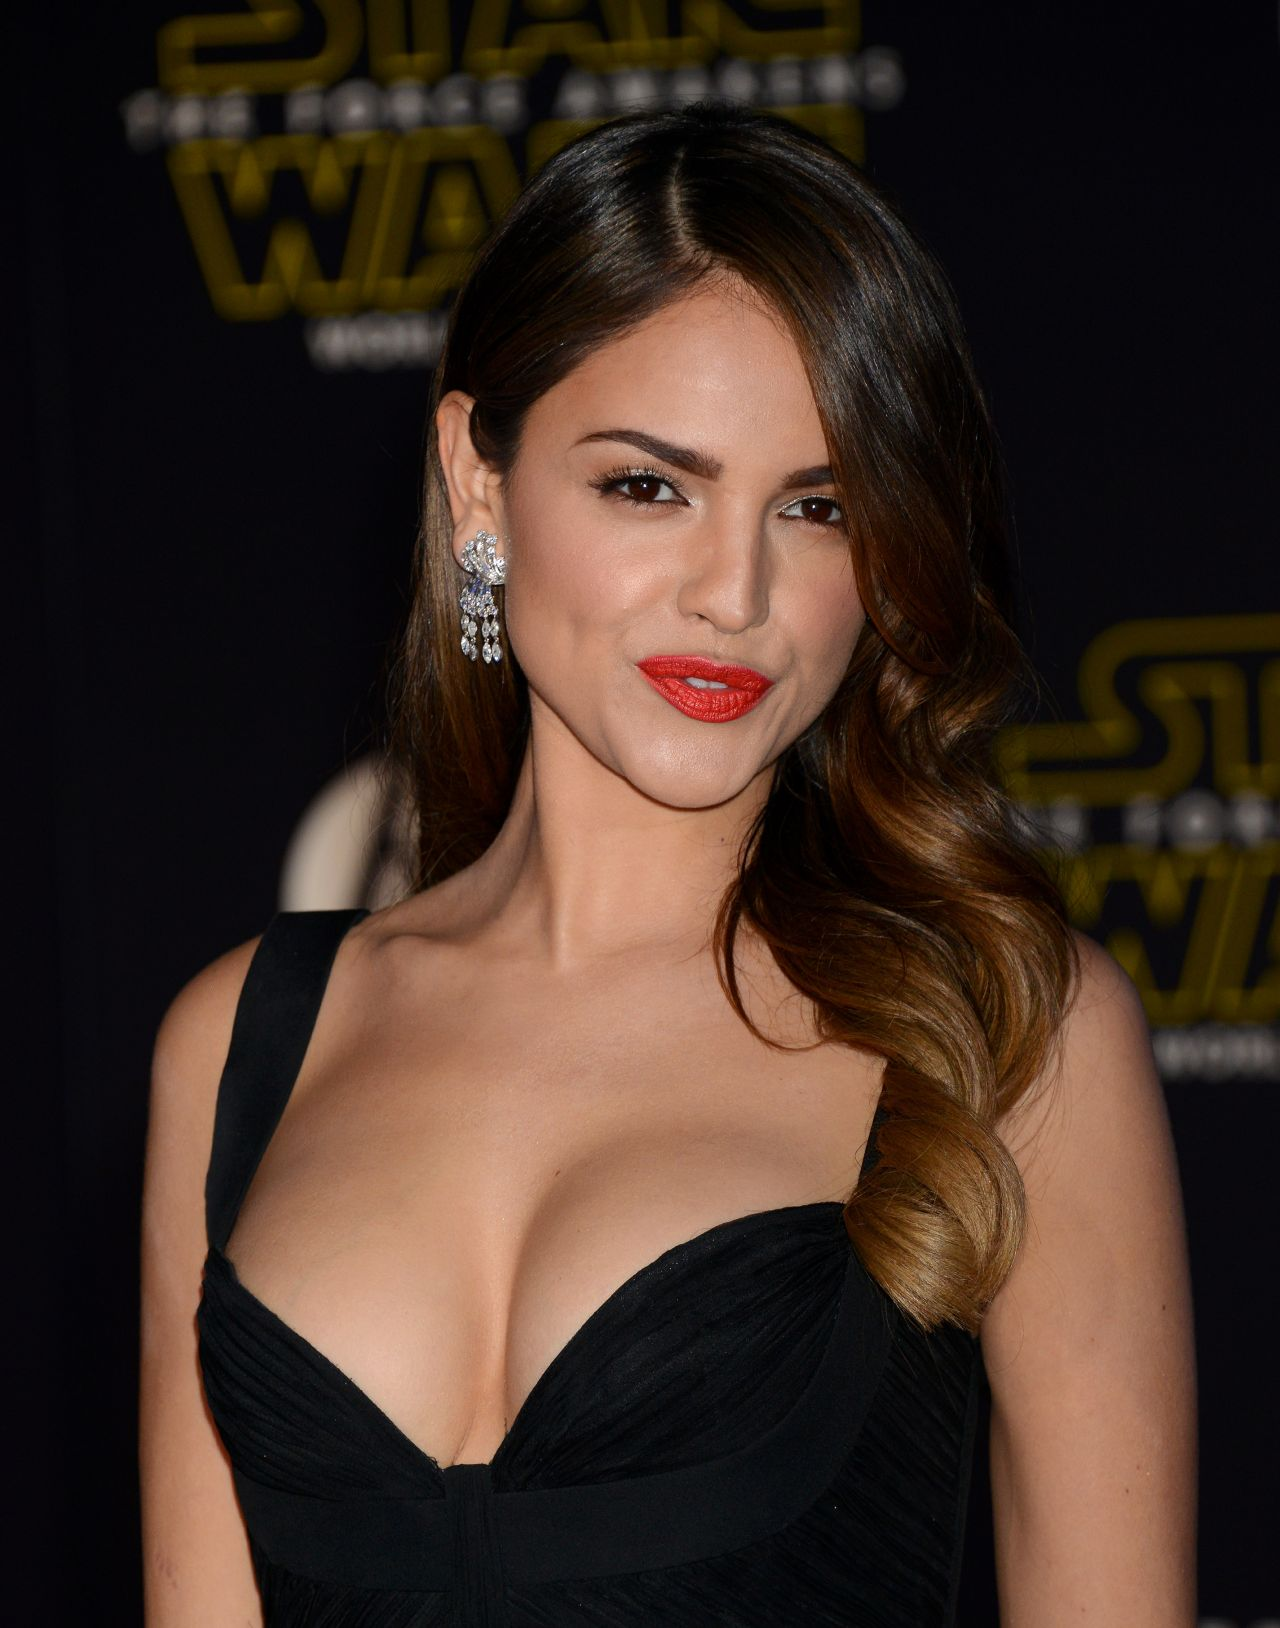 Eiza Gonzalez Star Wars The Force Awakens Premiere In